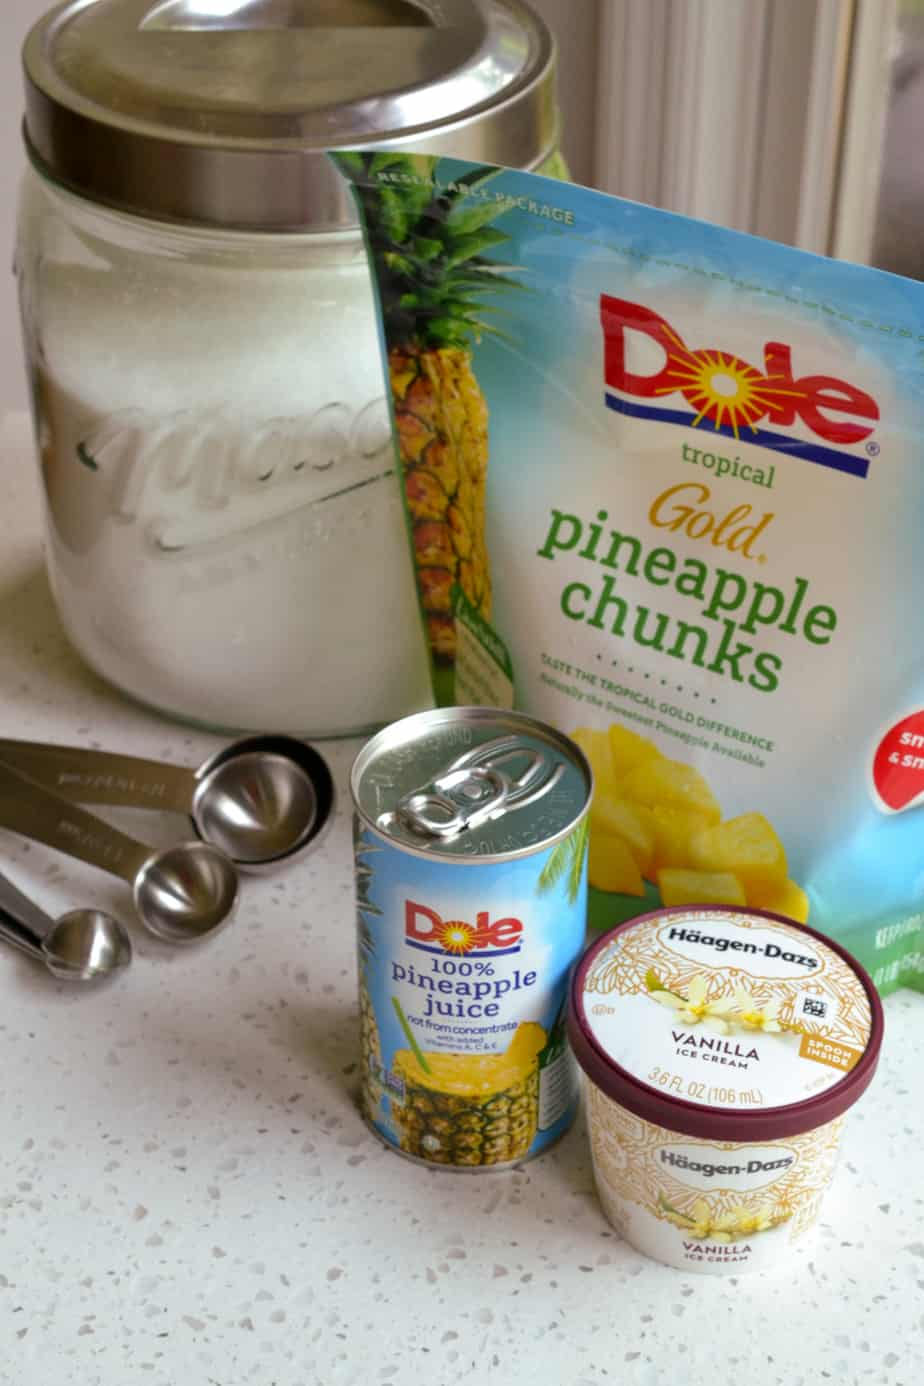 The ingredients needed to make Dole Whip